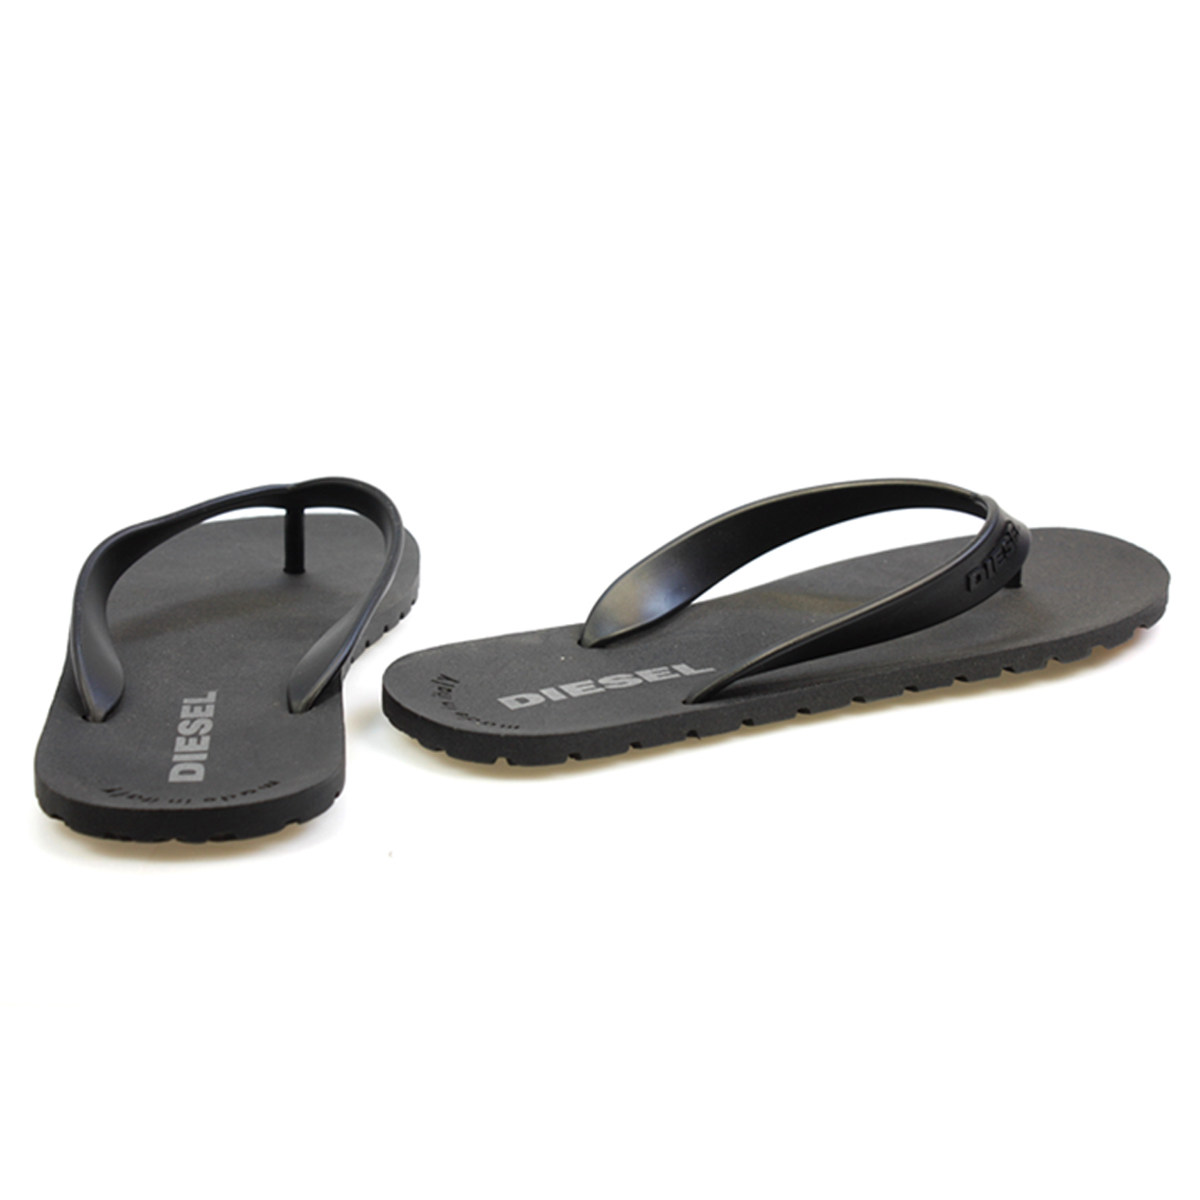 for sale very cheap Diesel Flip Flops in Black cheap visa payment discount exclusive real lx96nJ